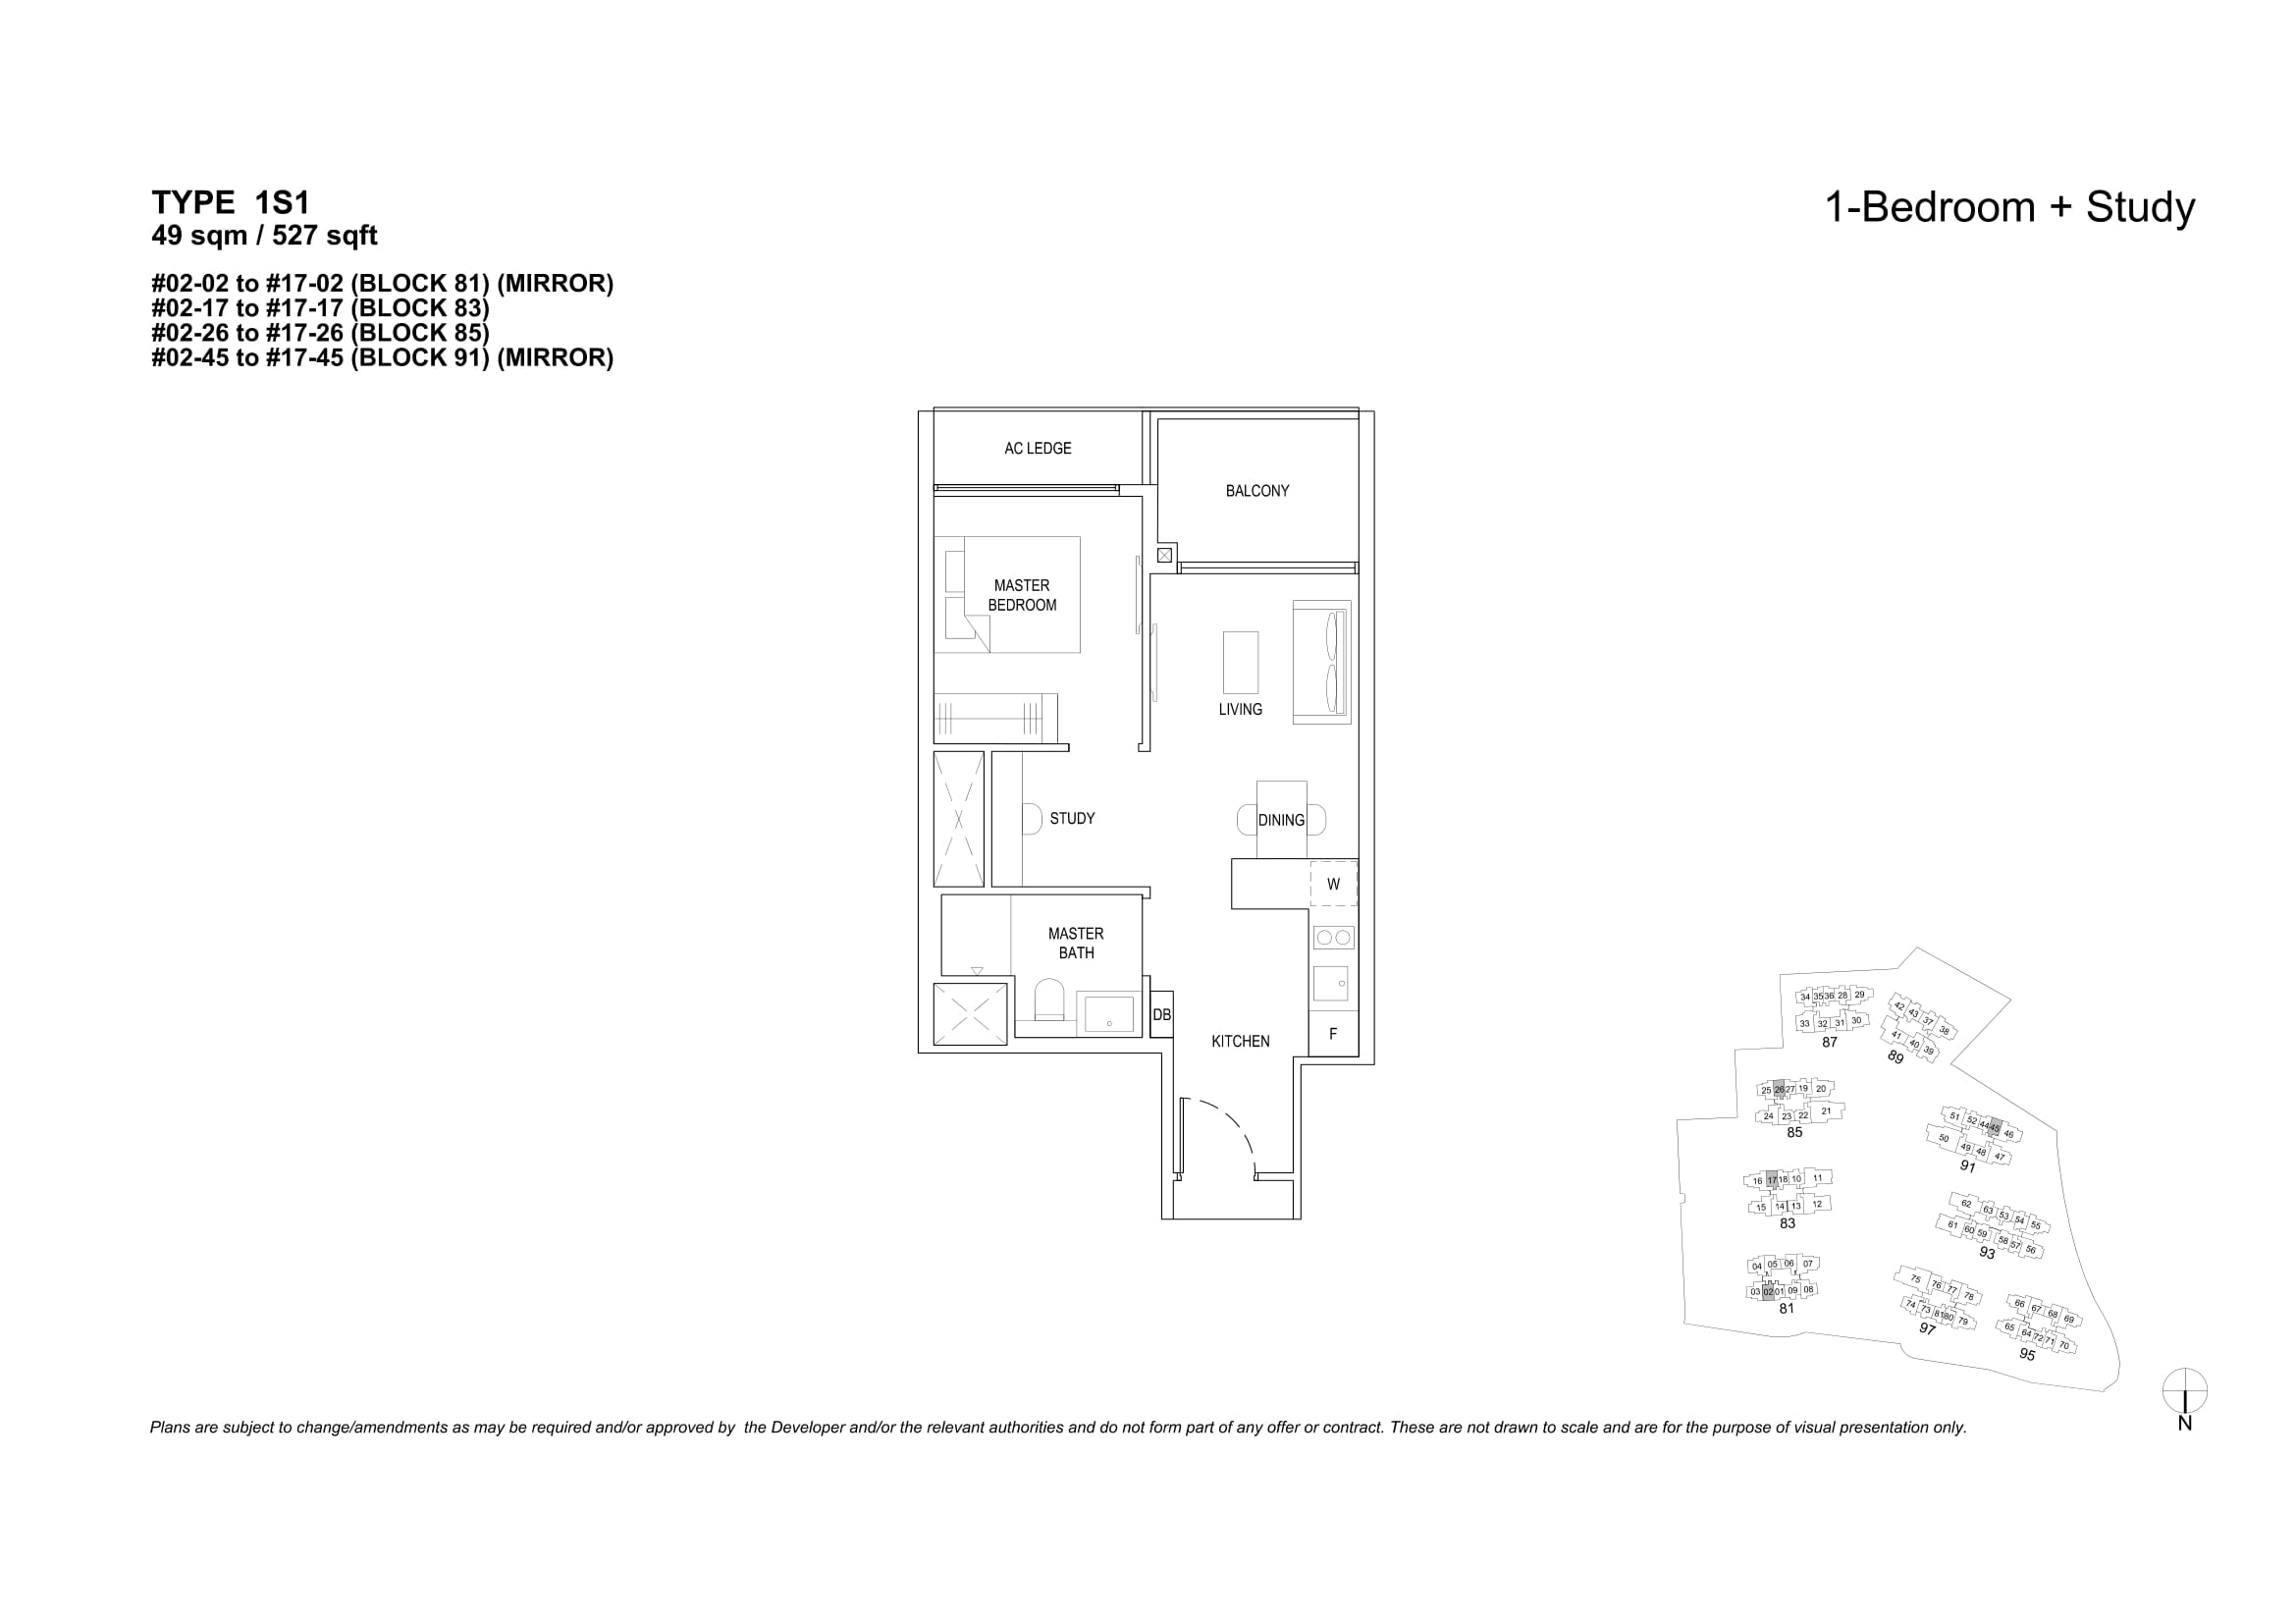 The Florence Residences' one-bedroom + study types